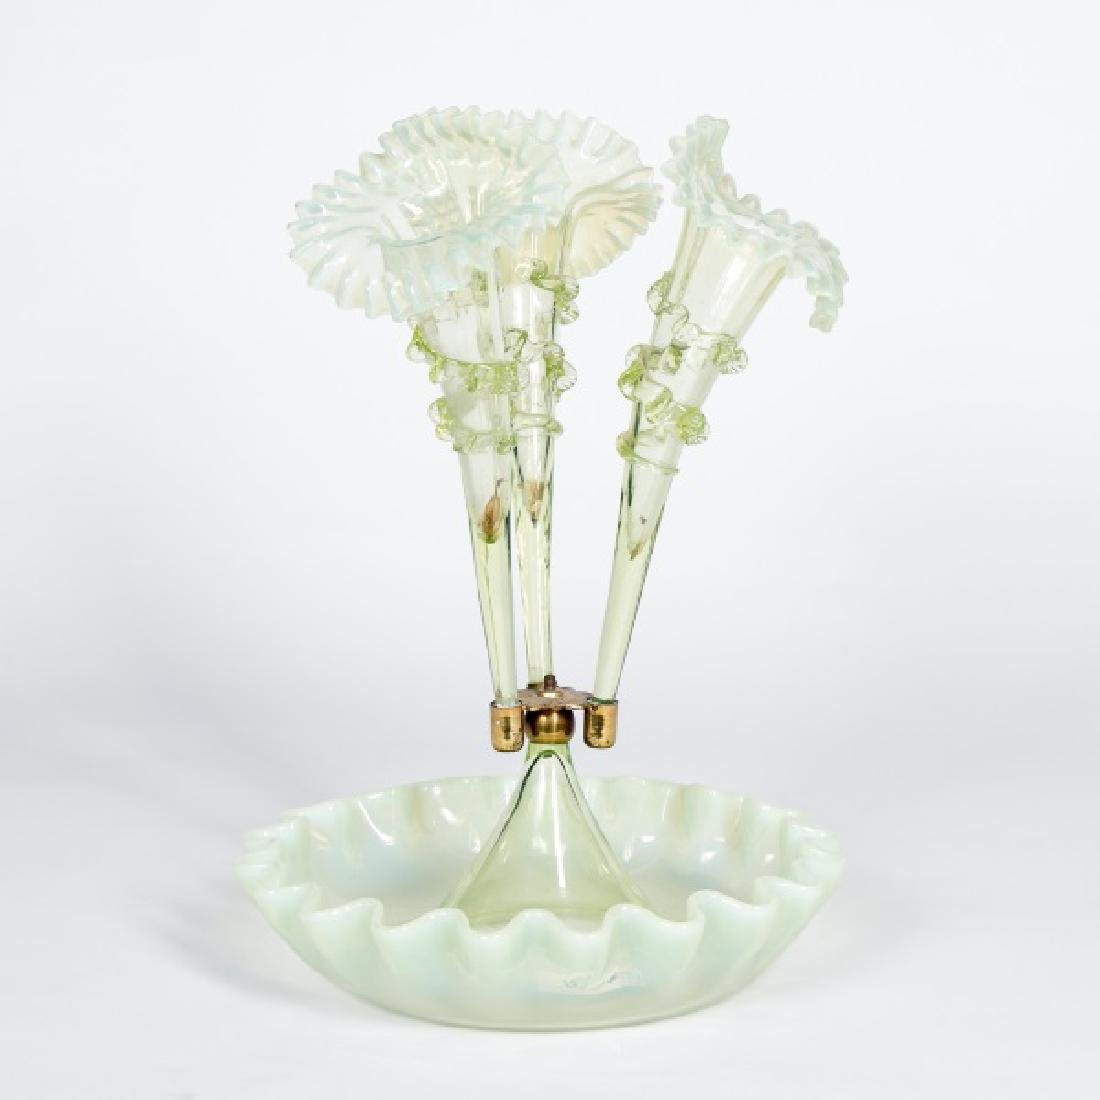 19th/20th C. Three Arm Blown Glass Epergne